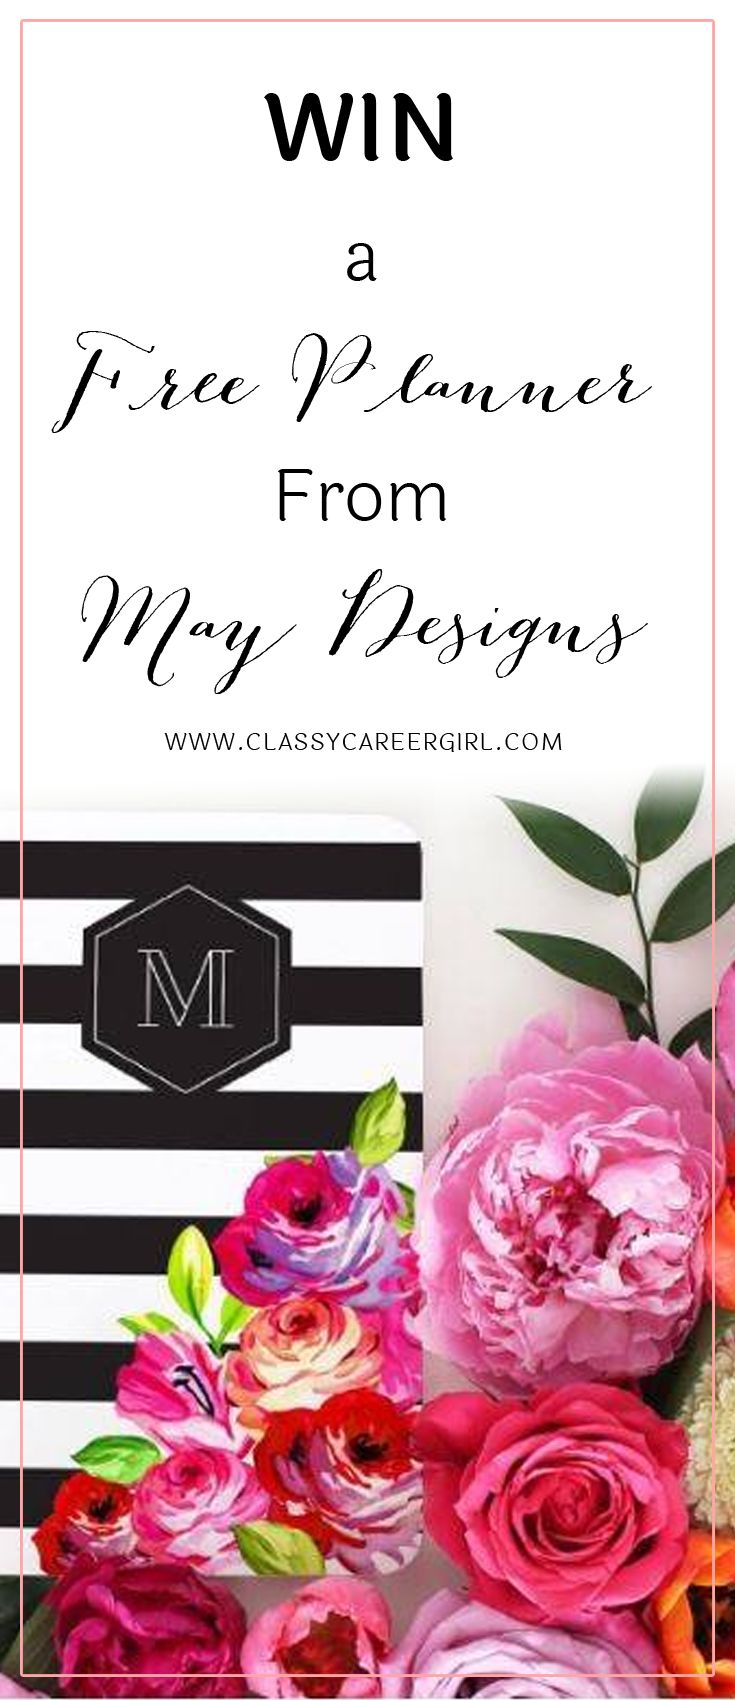 Win a Free Planner From May Designs GIVEAWAY: We've teamed up with some amazing partners to bring you some great giveaways just in time for the holidays! Read more: http://www.classycareergirl.com/2016/12/may-designs-planner-giveaway/